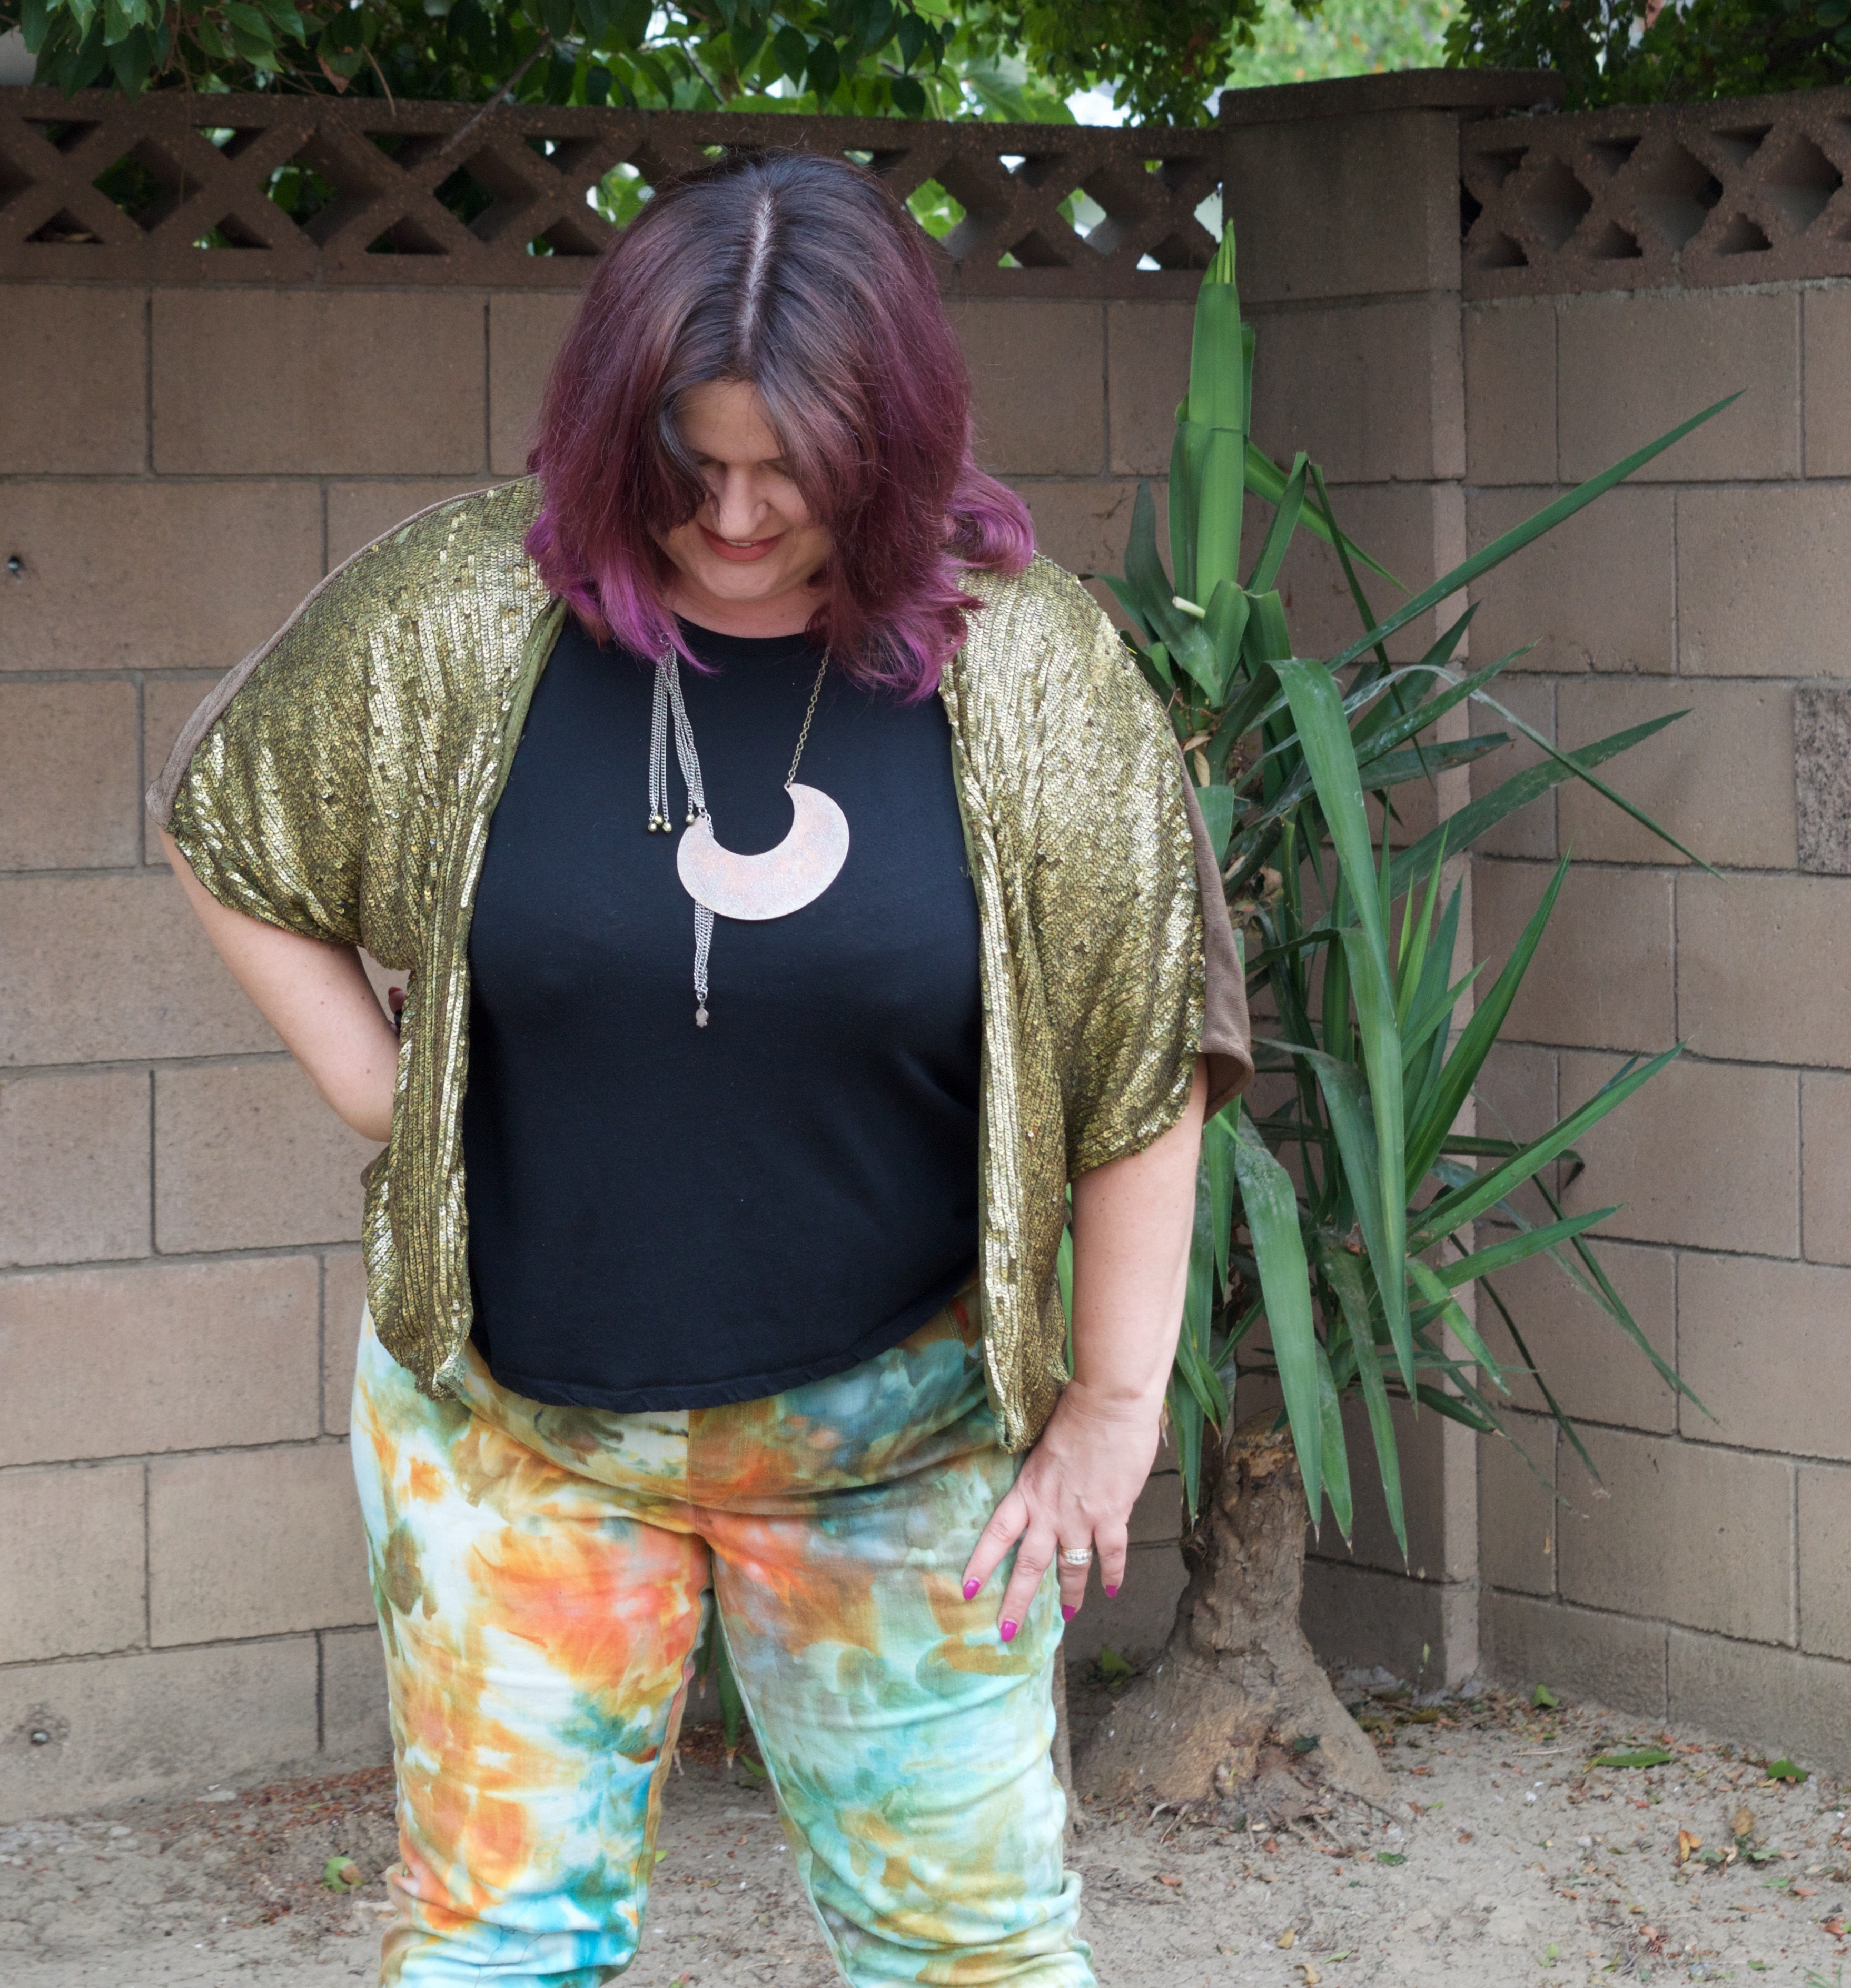 Sequin jacket and icedyed jeans